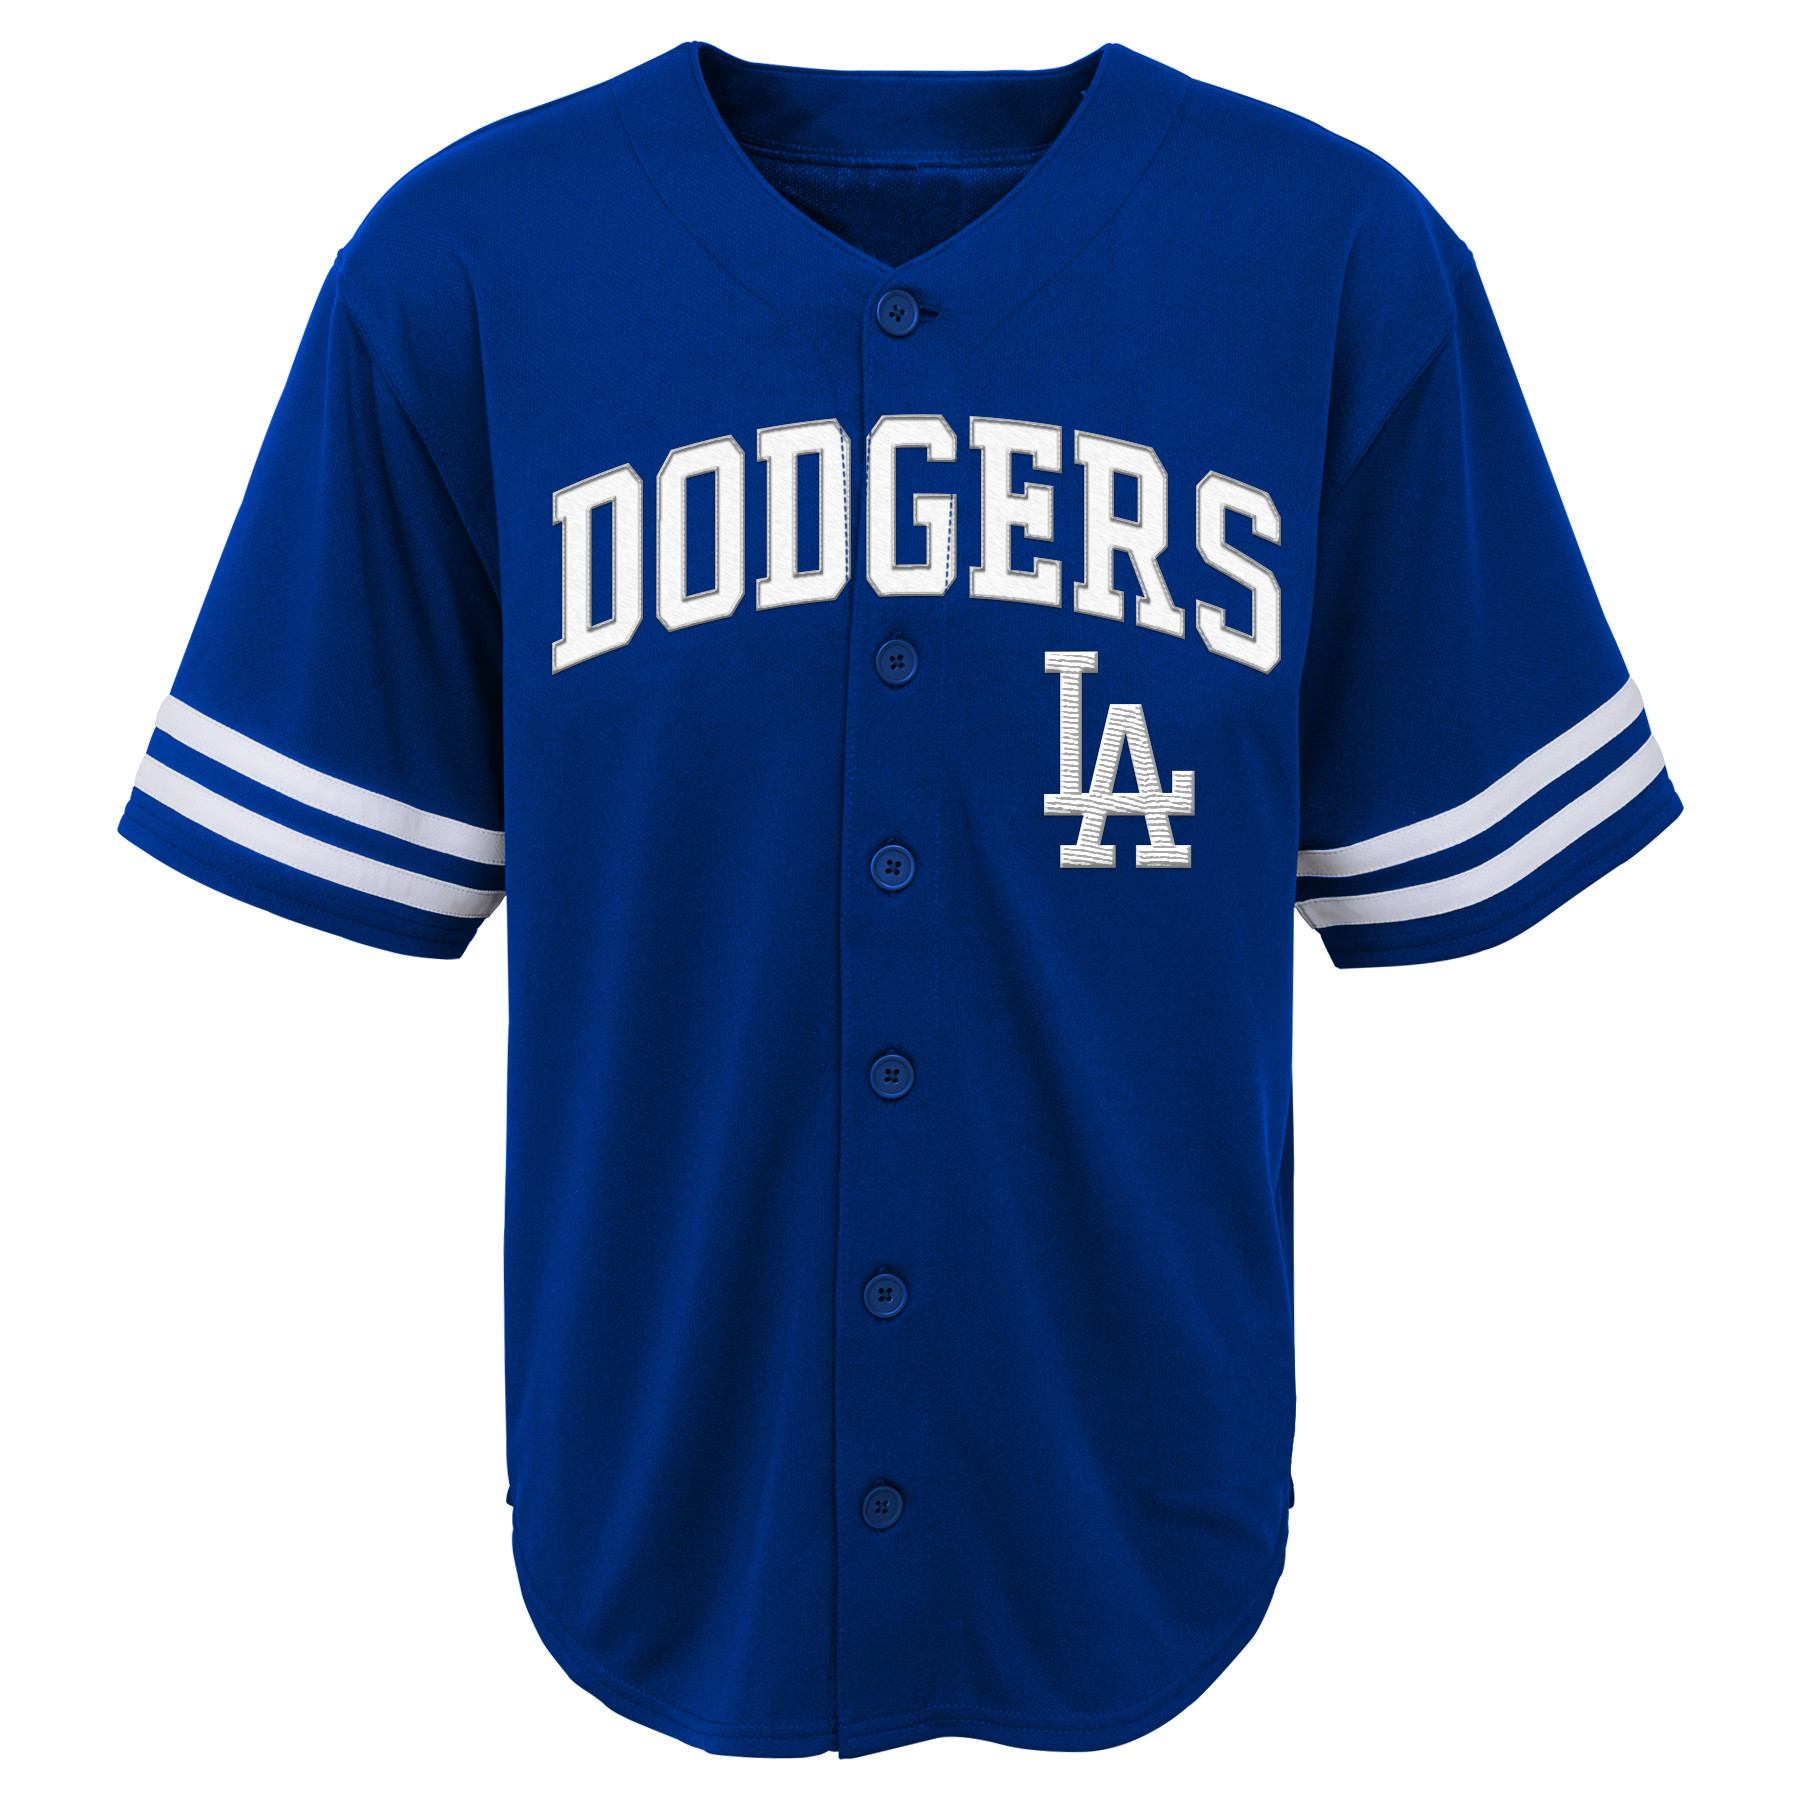 MLB Los Angeles DODGERS TEE Short Sleeve Boys Fashion Jersey Tee 60% Cotton 40% Polyester BLACK Team Tee 4-18